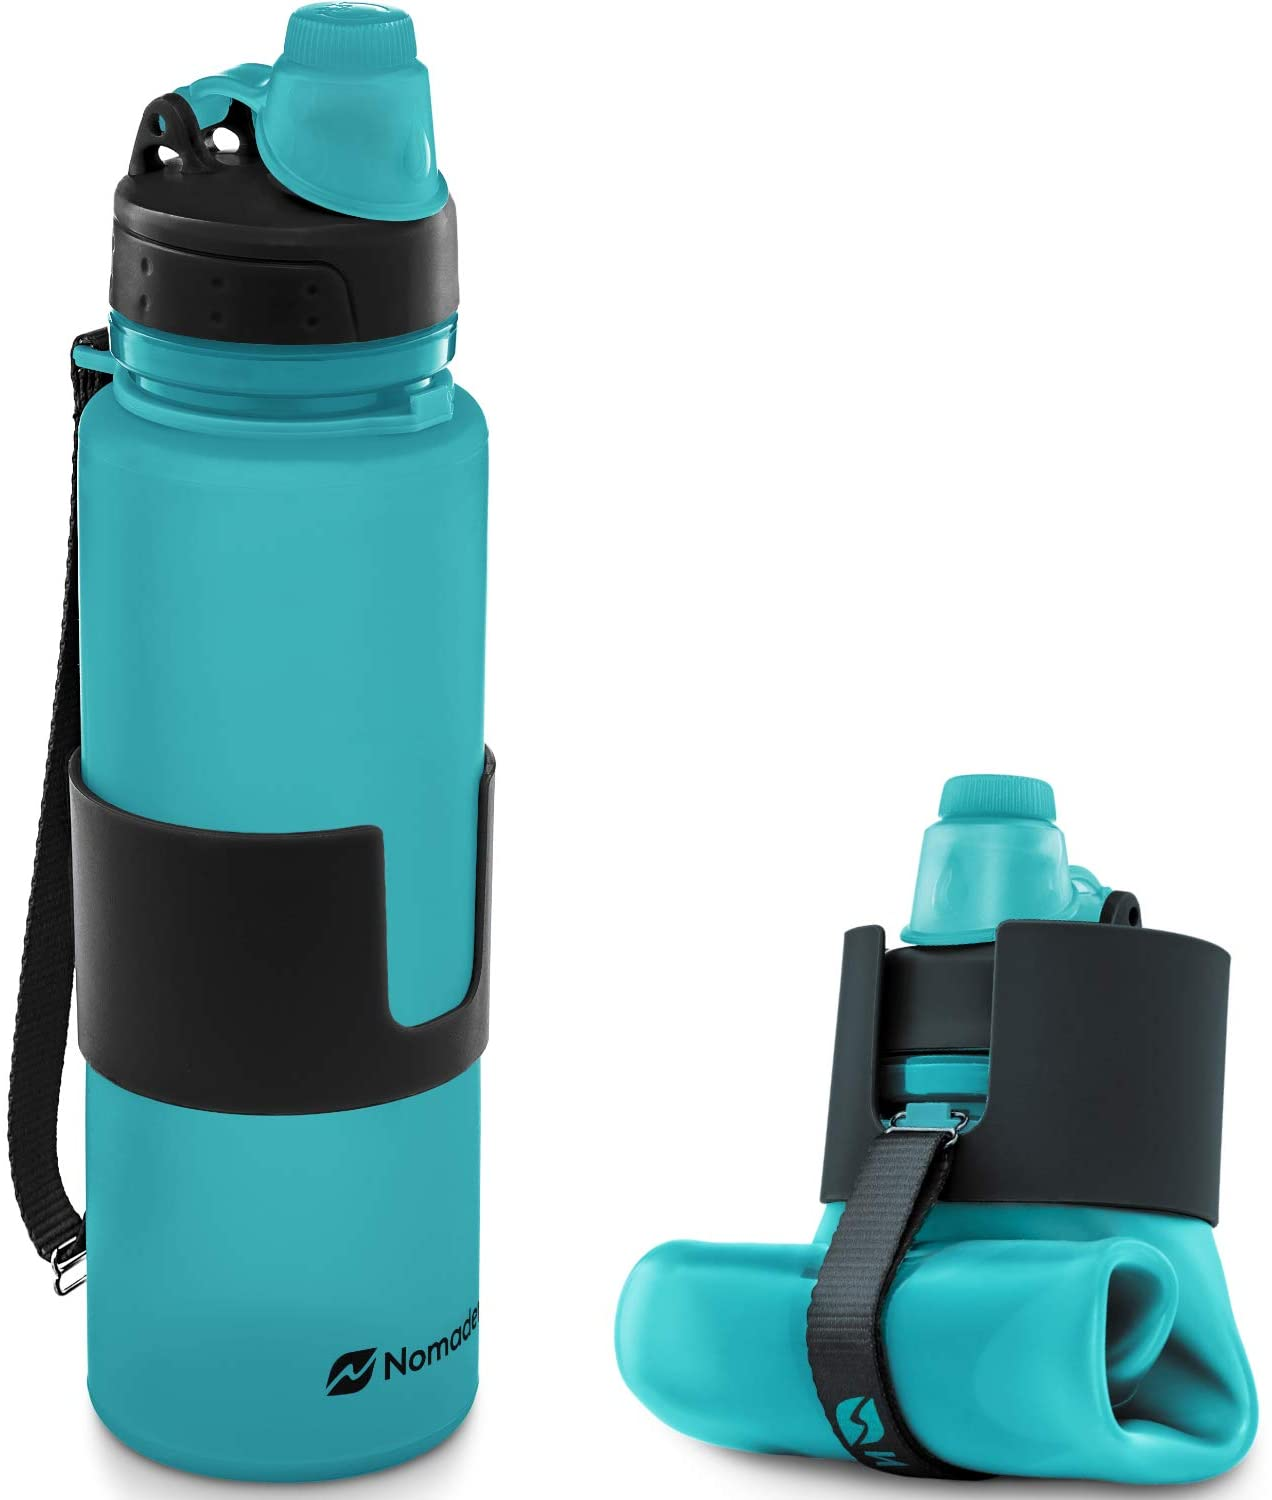 Outdoor Exercise Cheap Job Lot Bargain 10 Collapsible Foldable Water Bottles